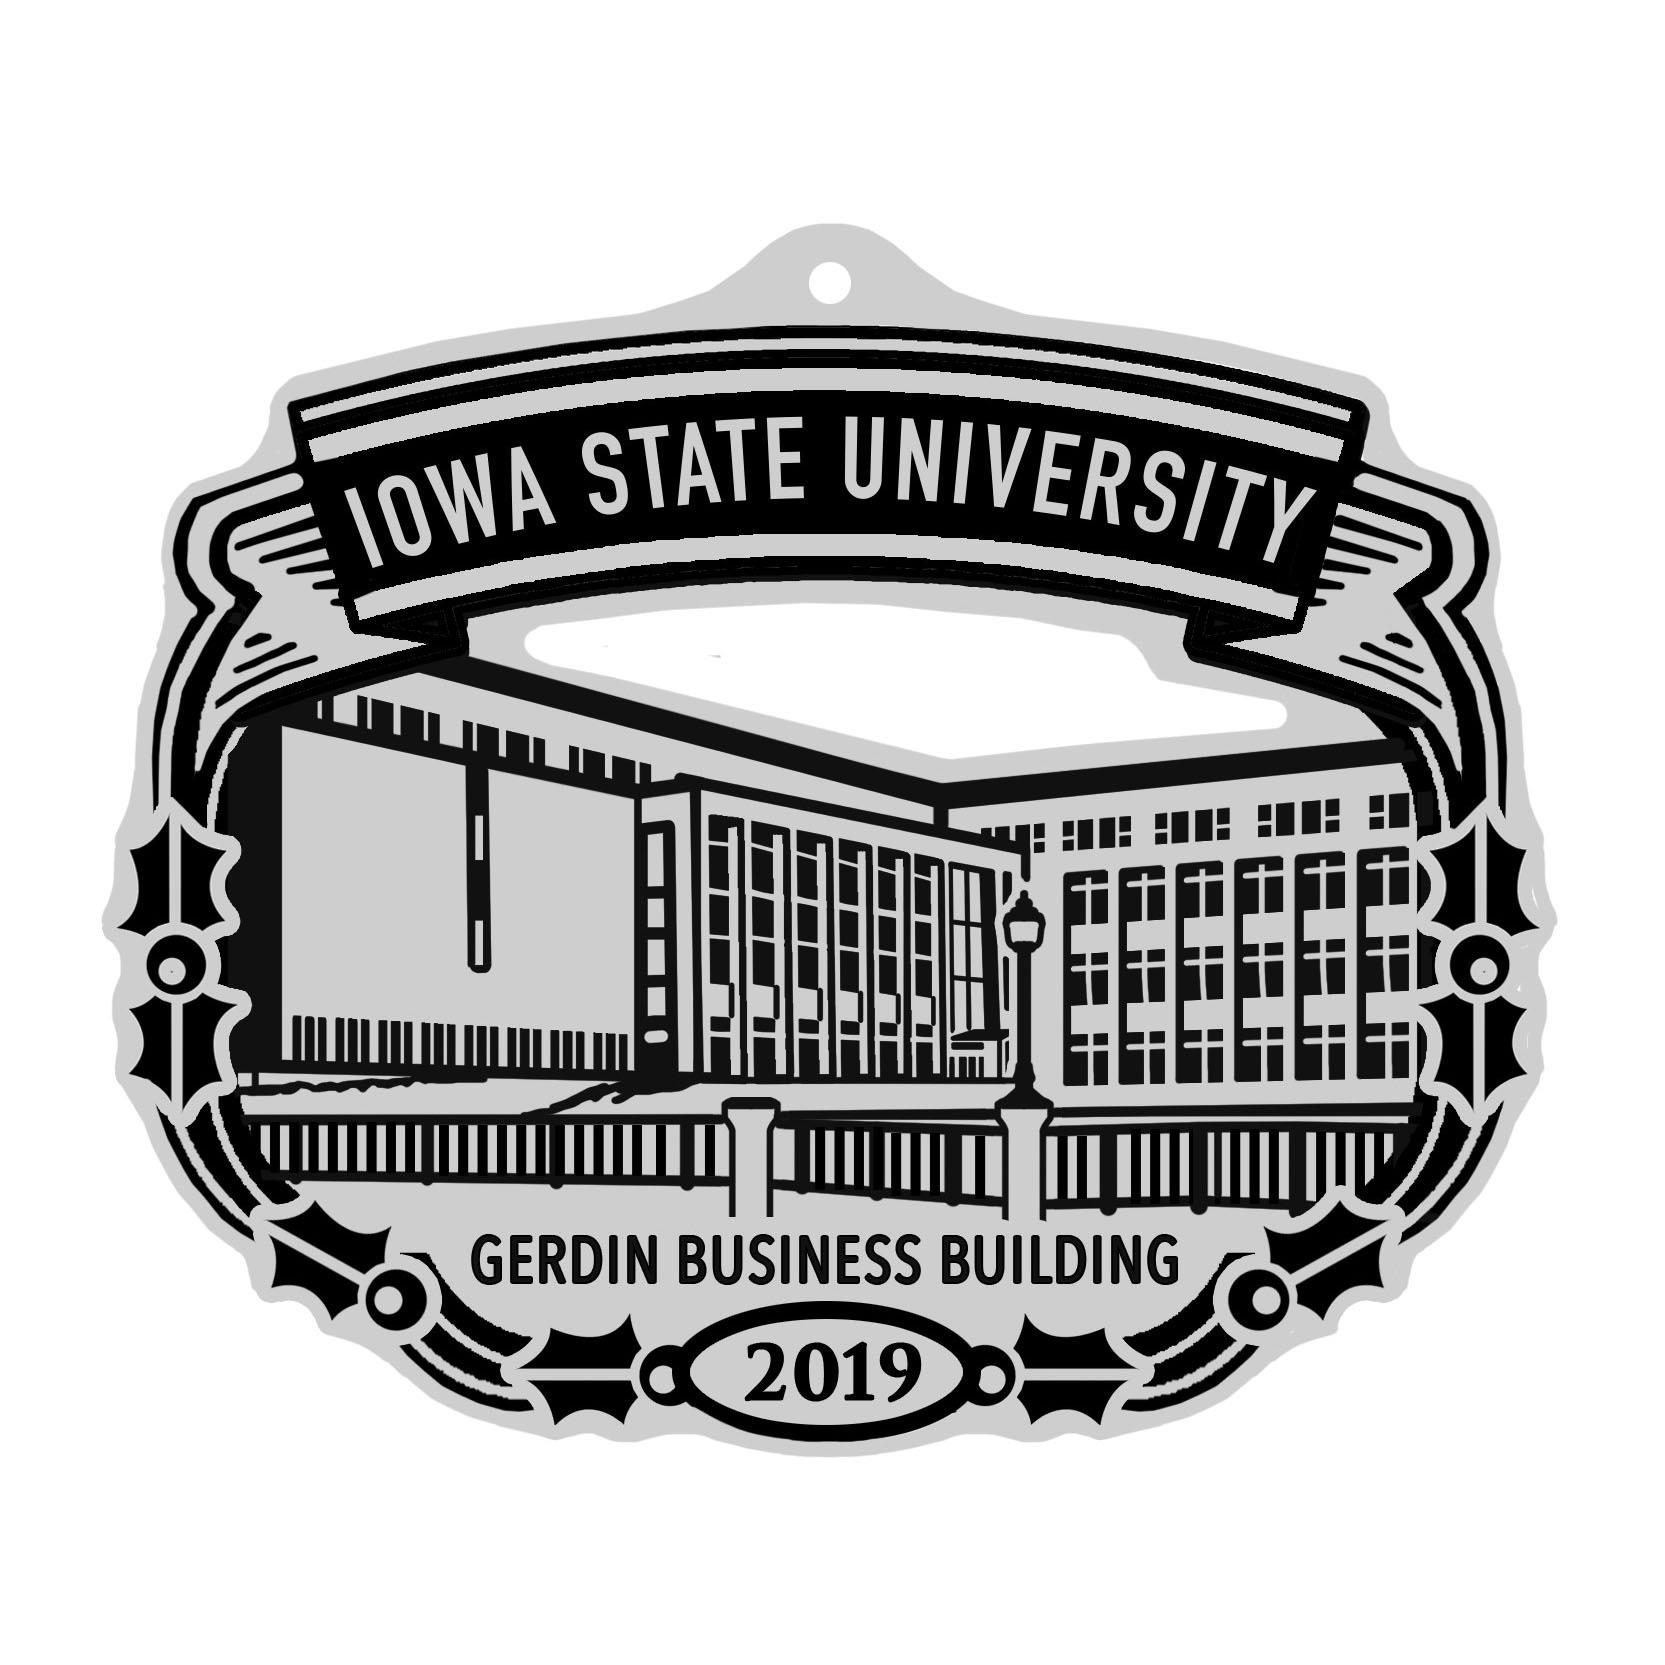 Image For ISUAA Commemorative Pewter Ornament